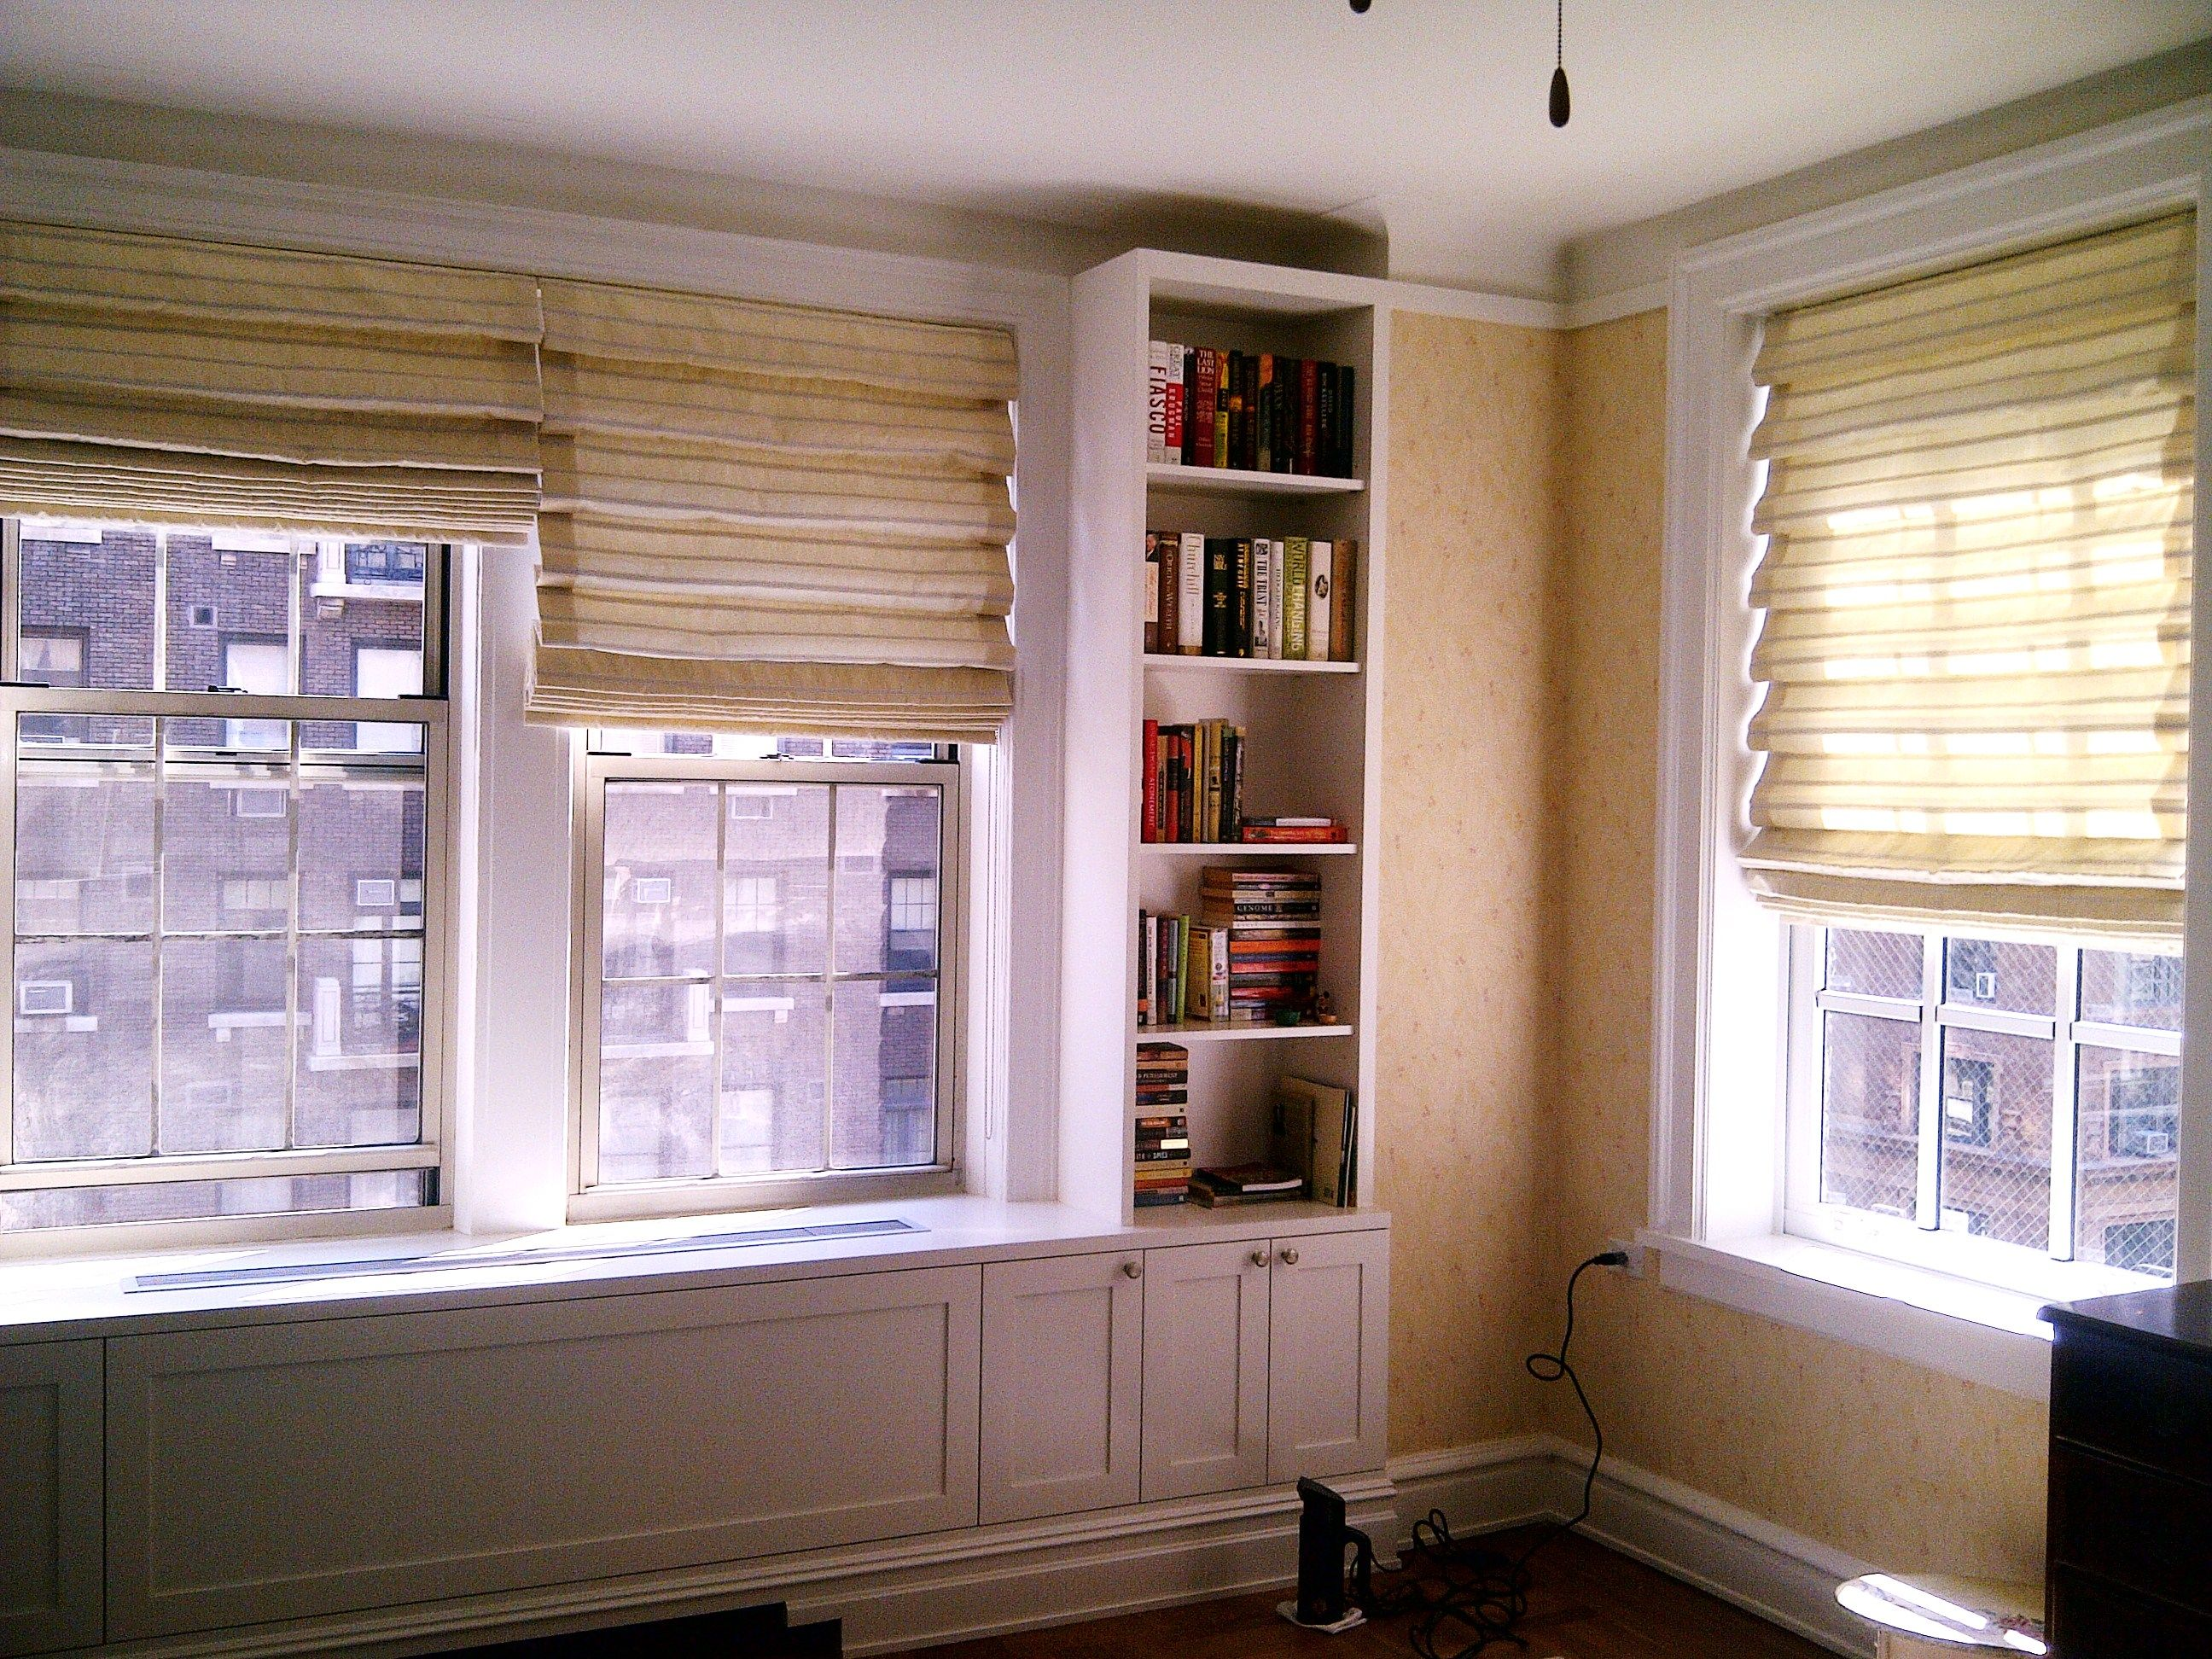 Kitchen window roman blinds  we custom made this soft romans shades with  silk fabric  soft